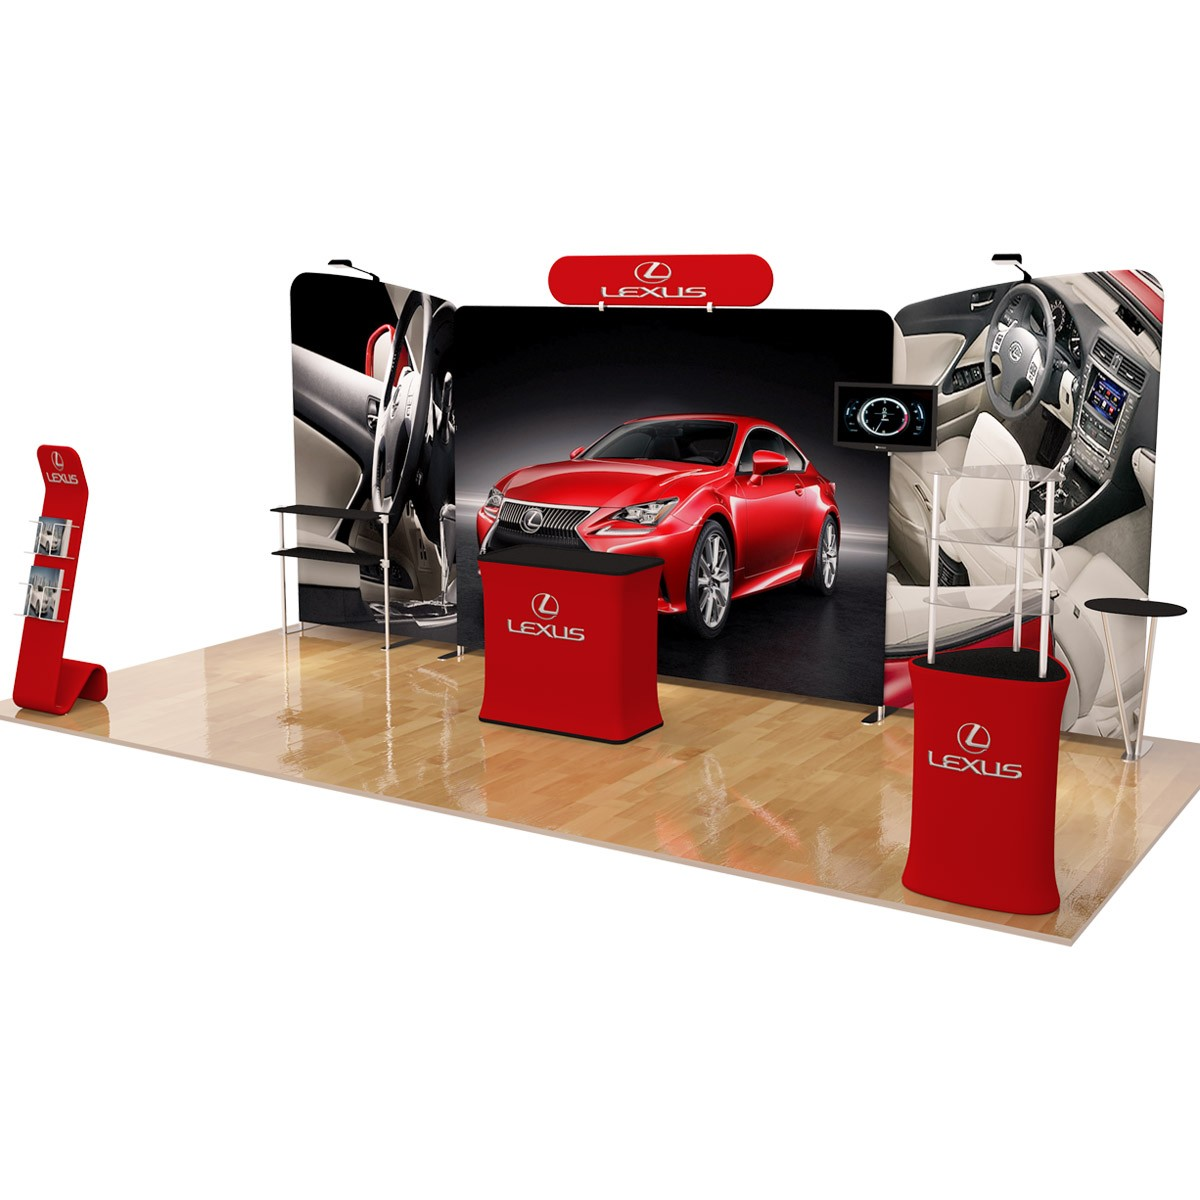 10 x 10ft Trade Show Booth (Design B)